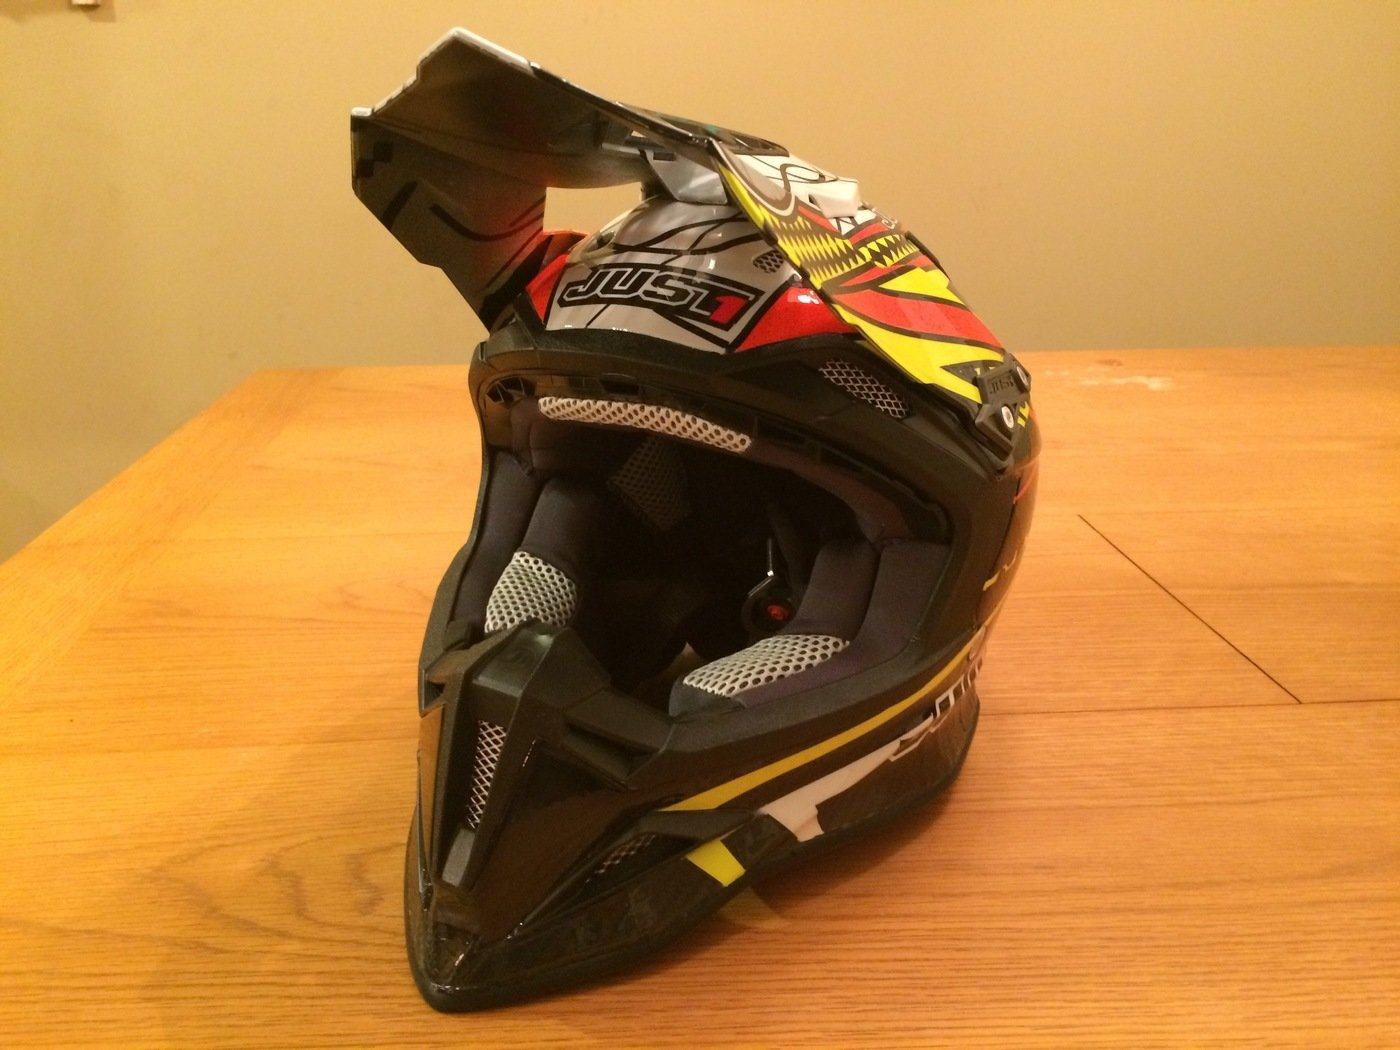 blake baggett motocross helmet by jamie hall at coroflot com